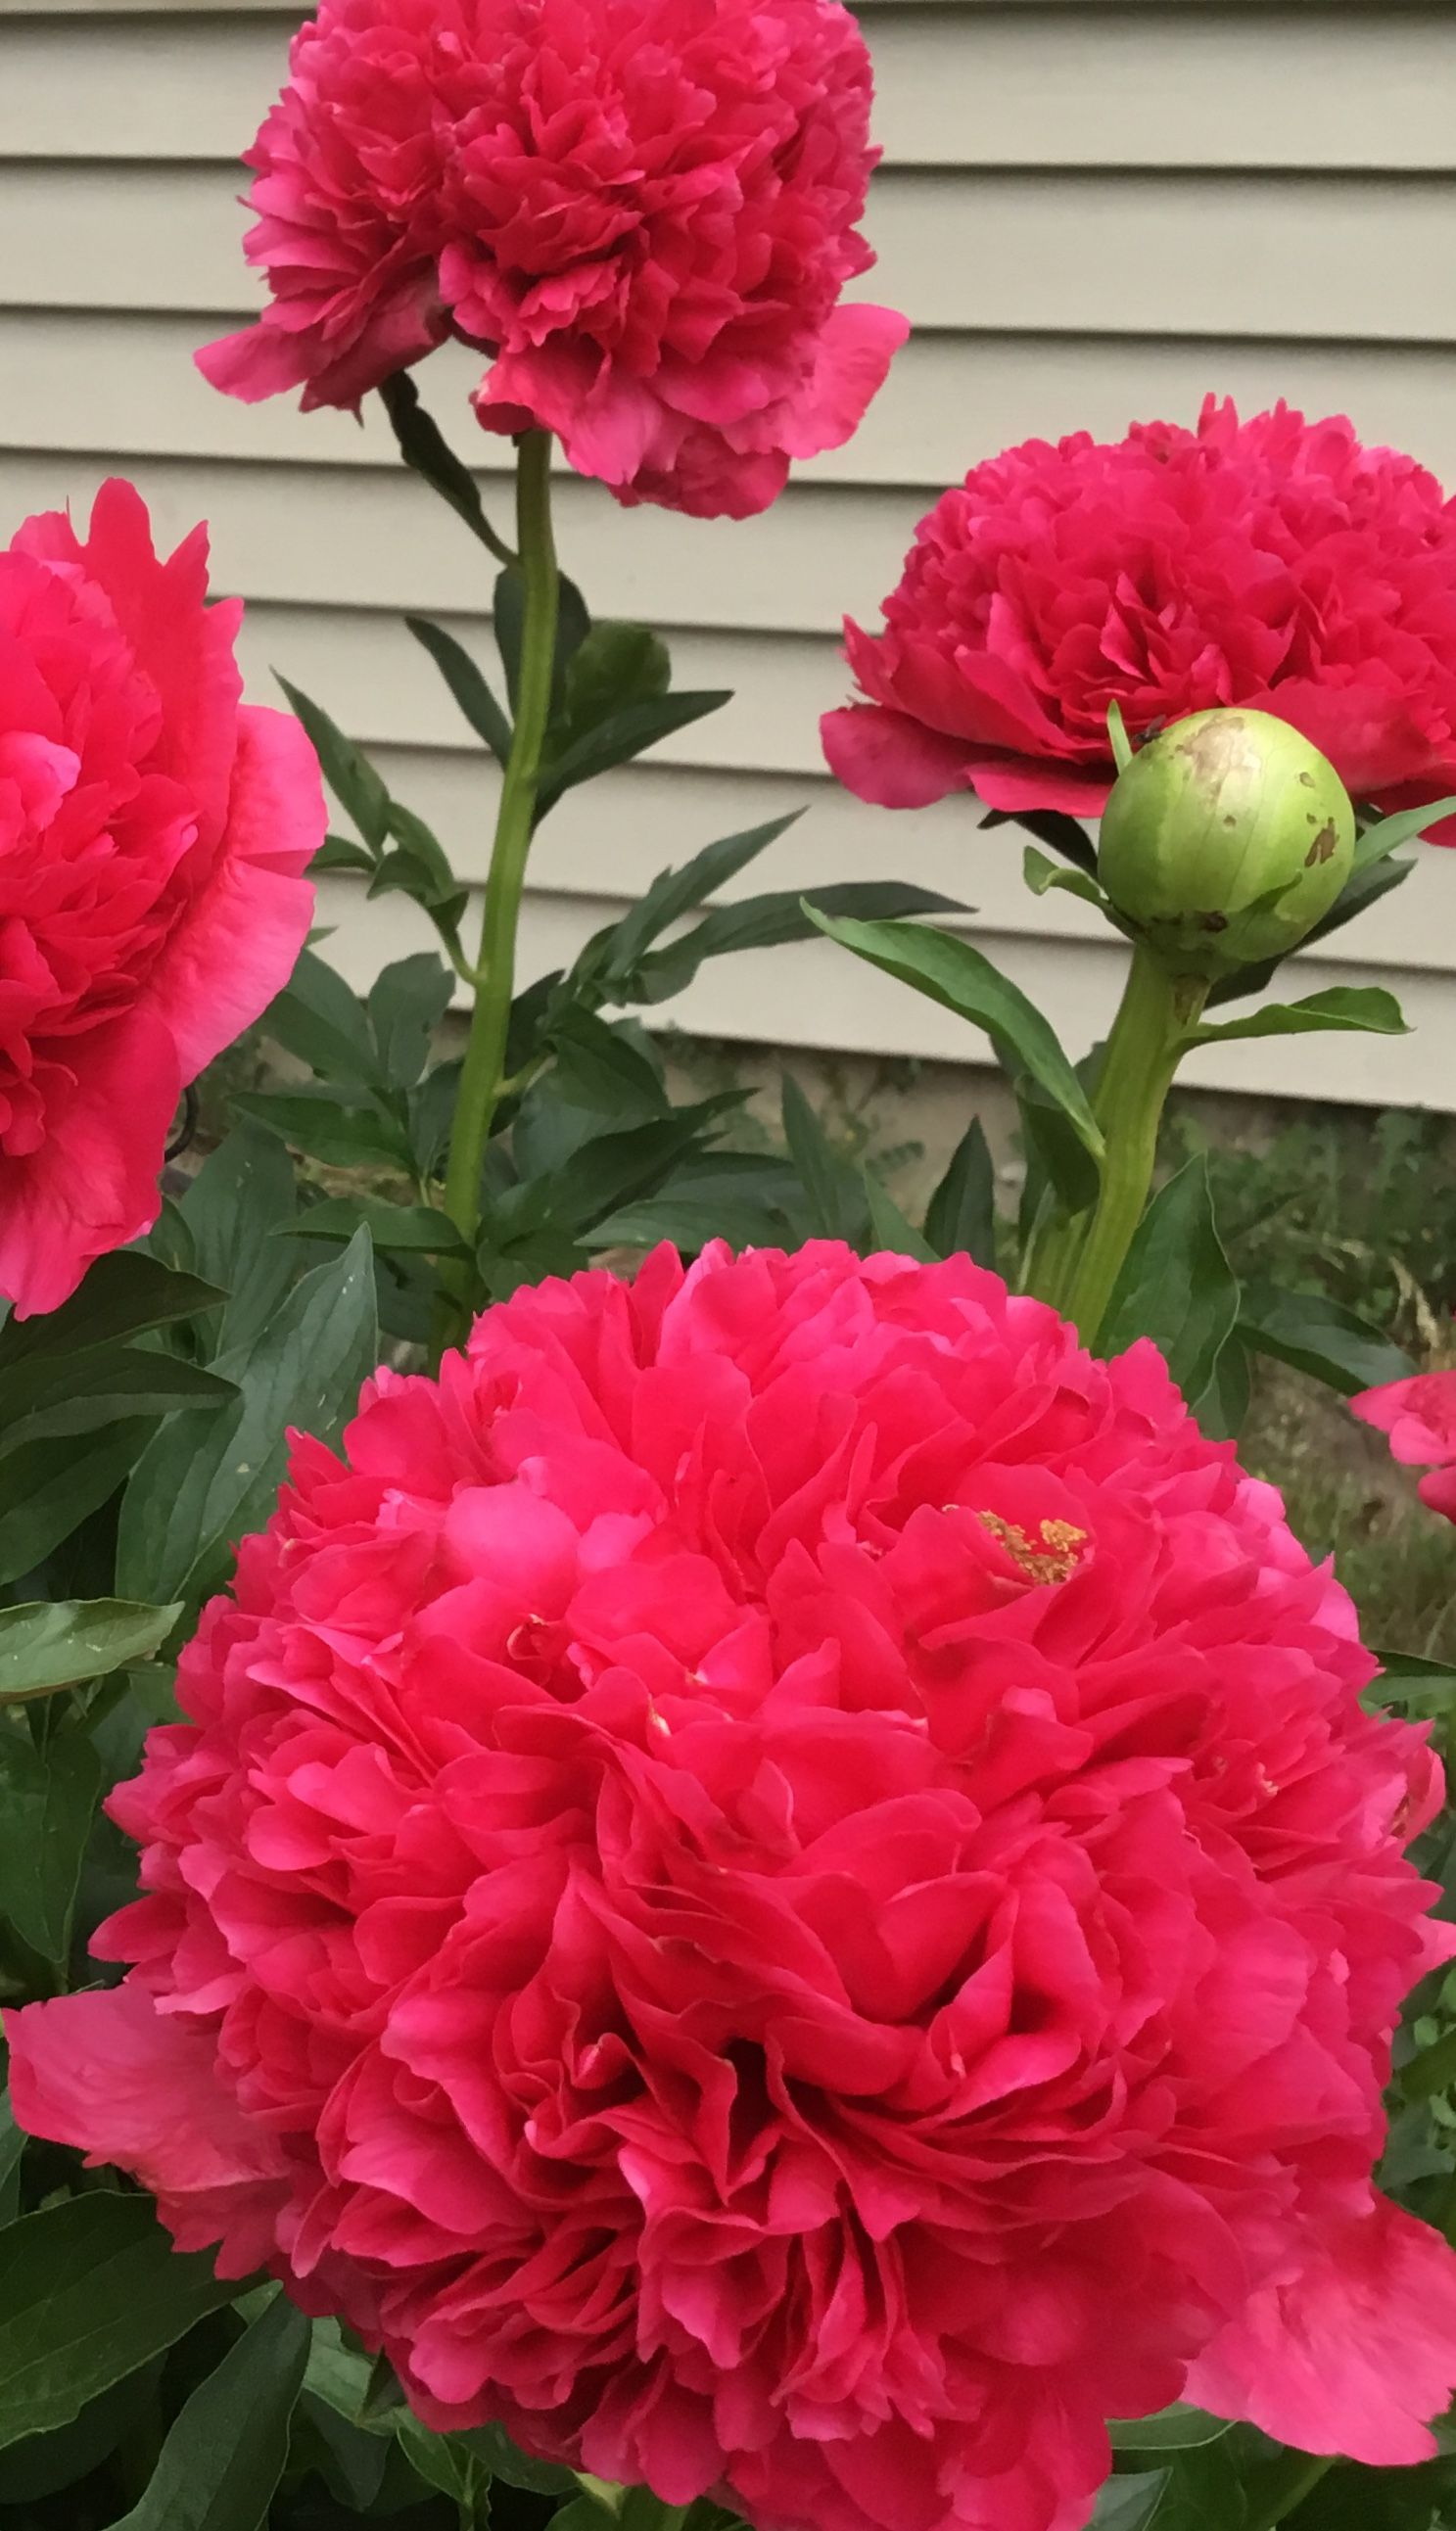 Camellia Japonica Roger Hall command performance peony (with images) | peonies, flowers